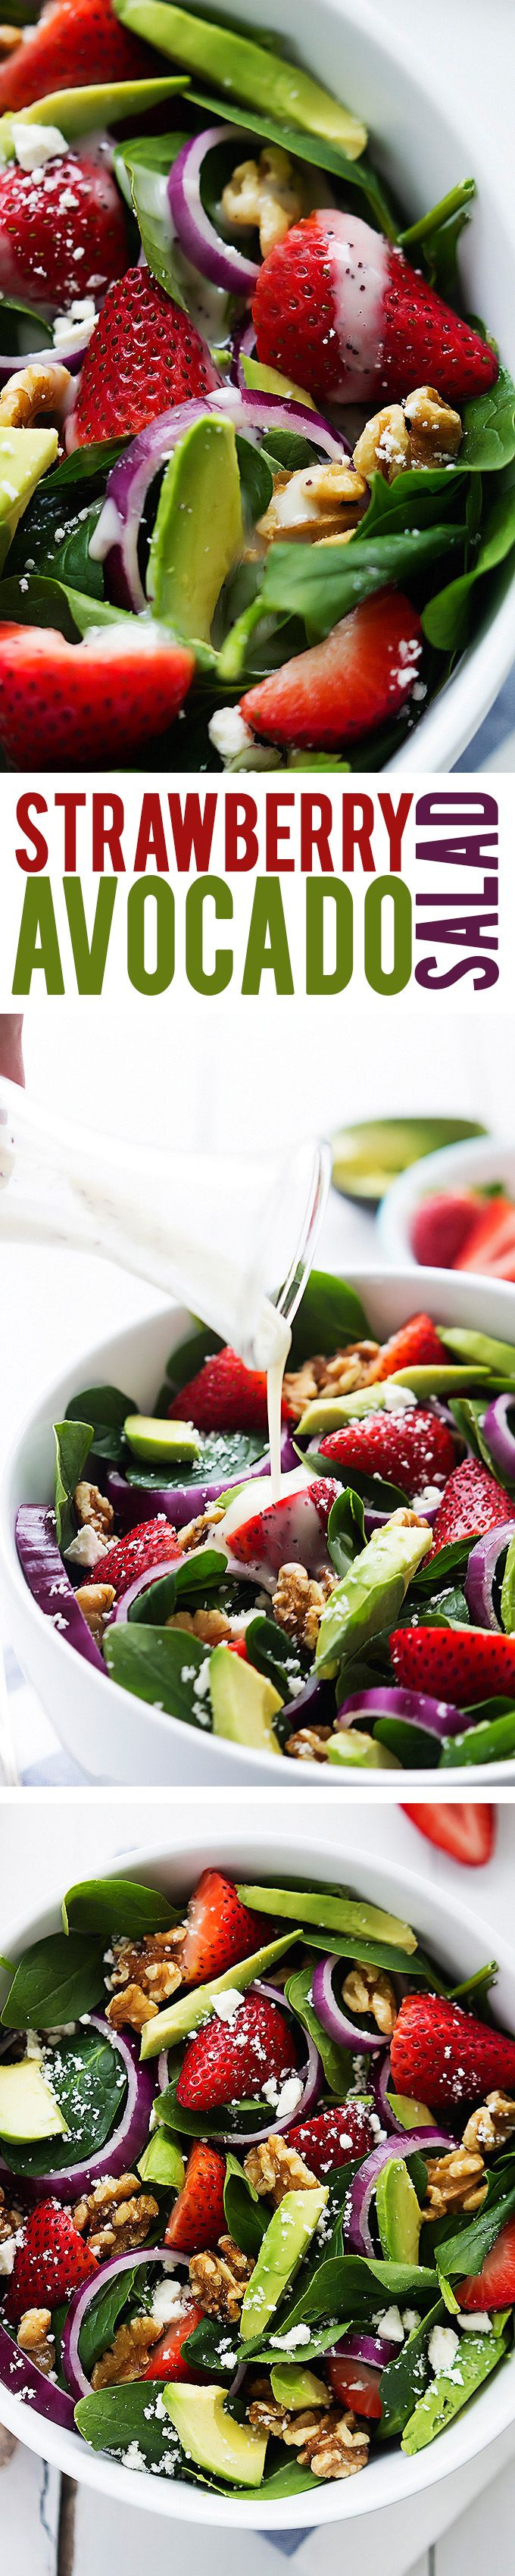 Healthy strawberry avocado spinach salad. Strawberries, avocados, walnuts, and feta cheese all tossed with fresh baby spinach and creamy poppyseed dressing!